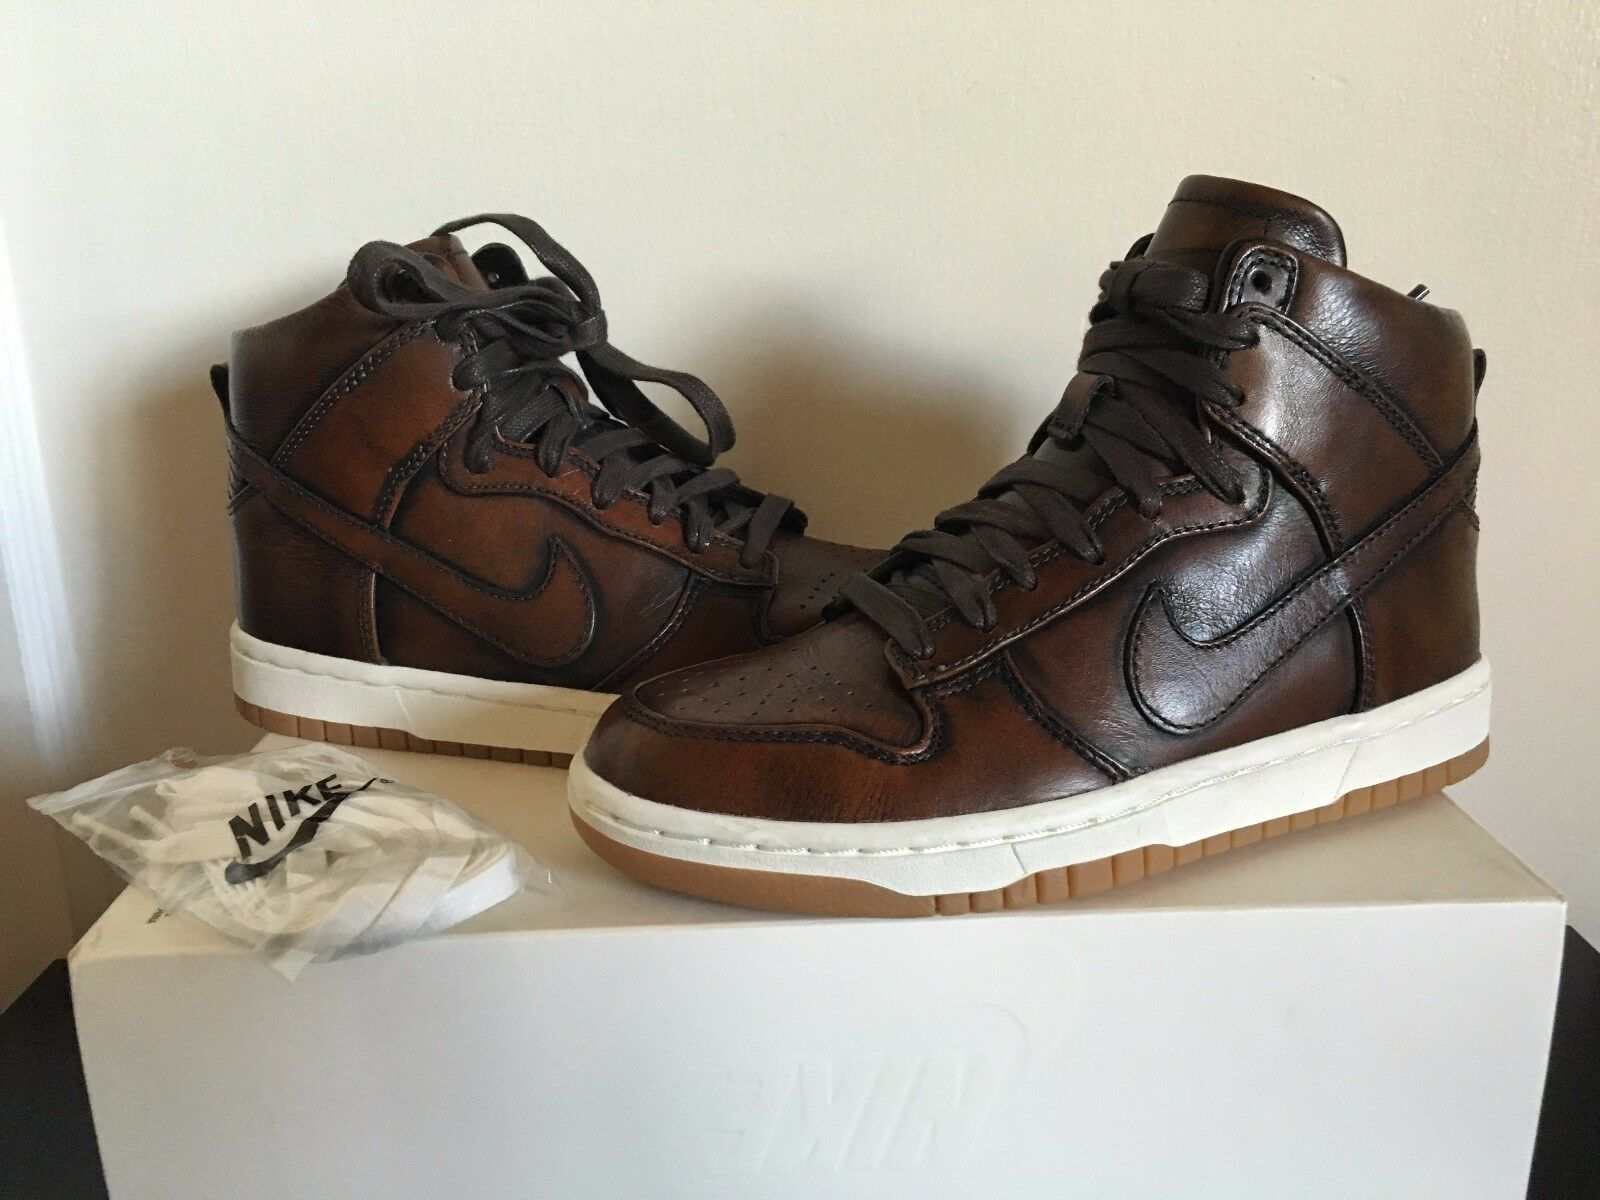 Nike Dunk Lux Burnished SP Classic Brown 747138 221 Men's Size 4 Wmns Size 5.5